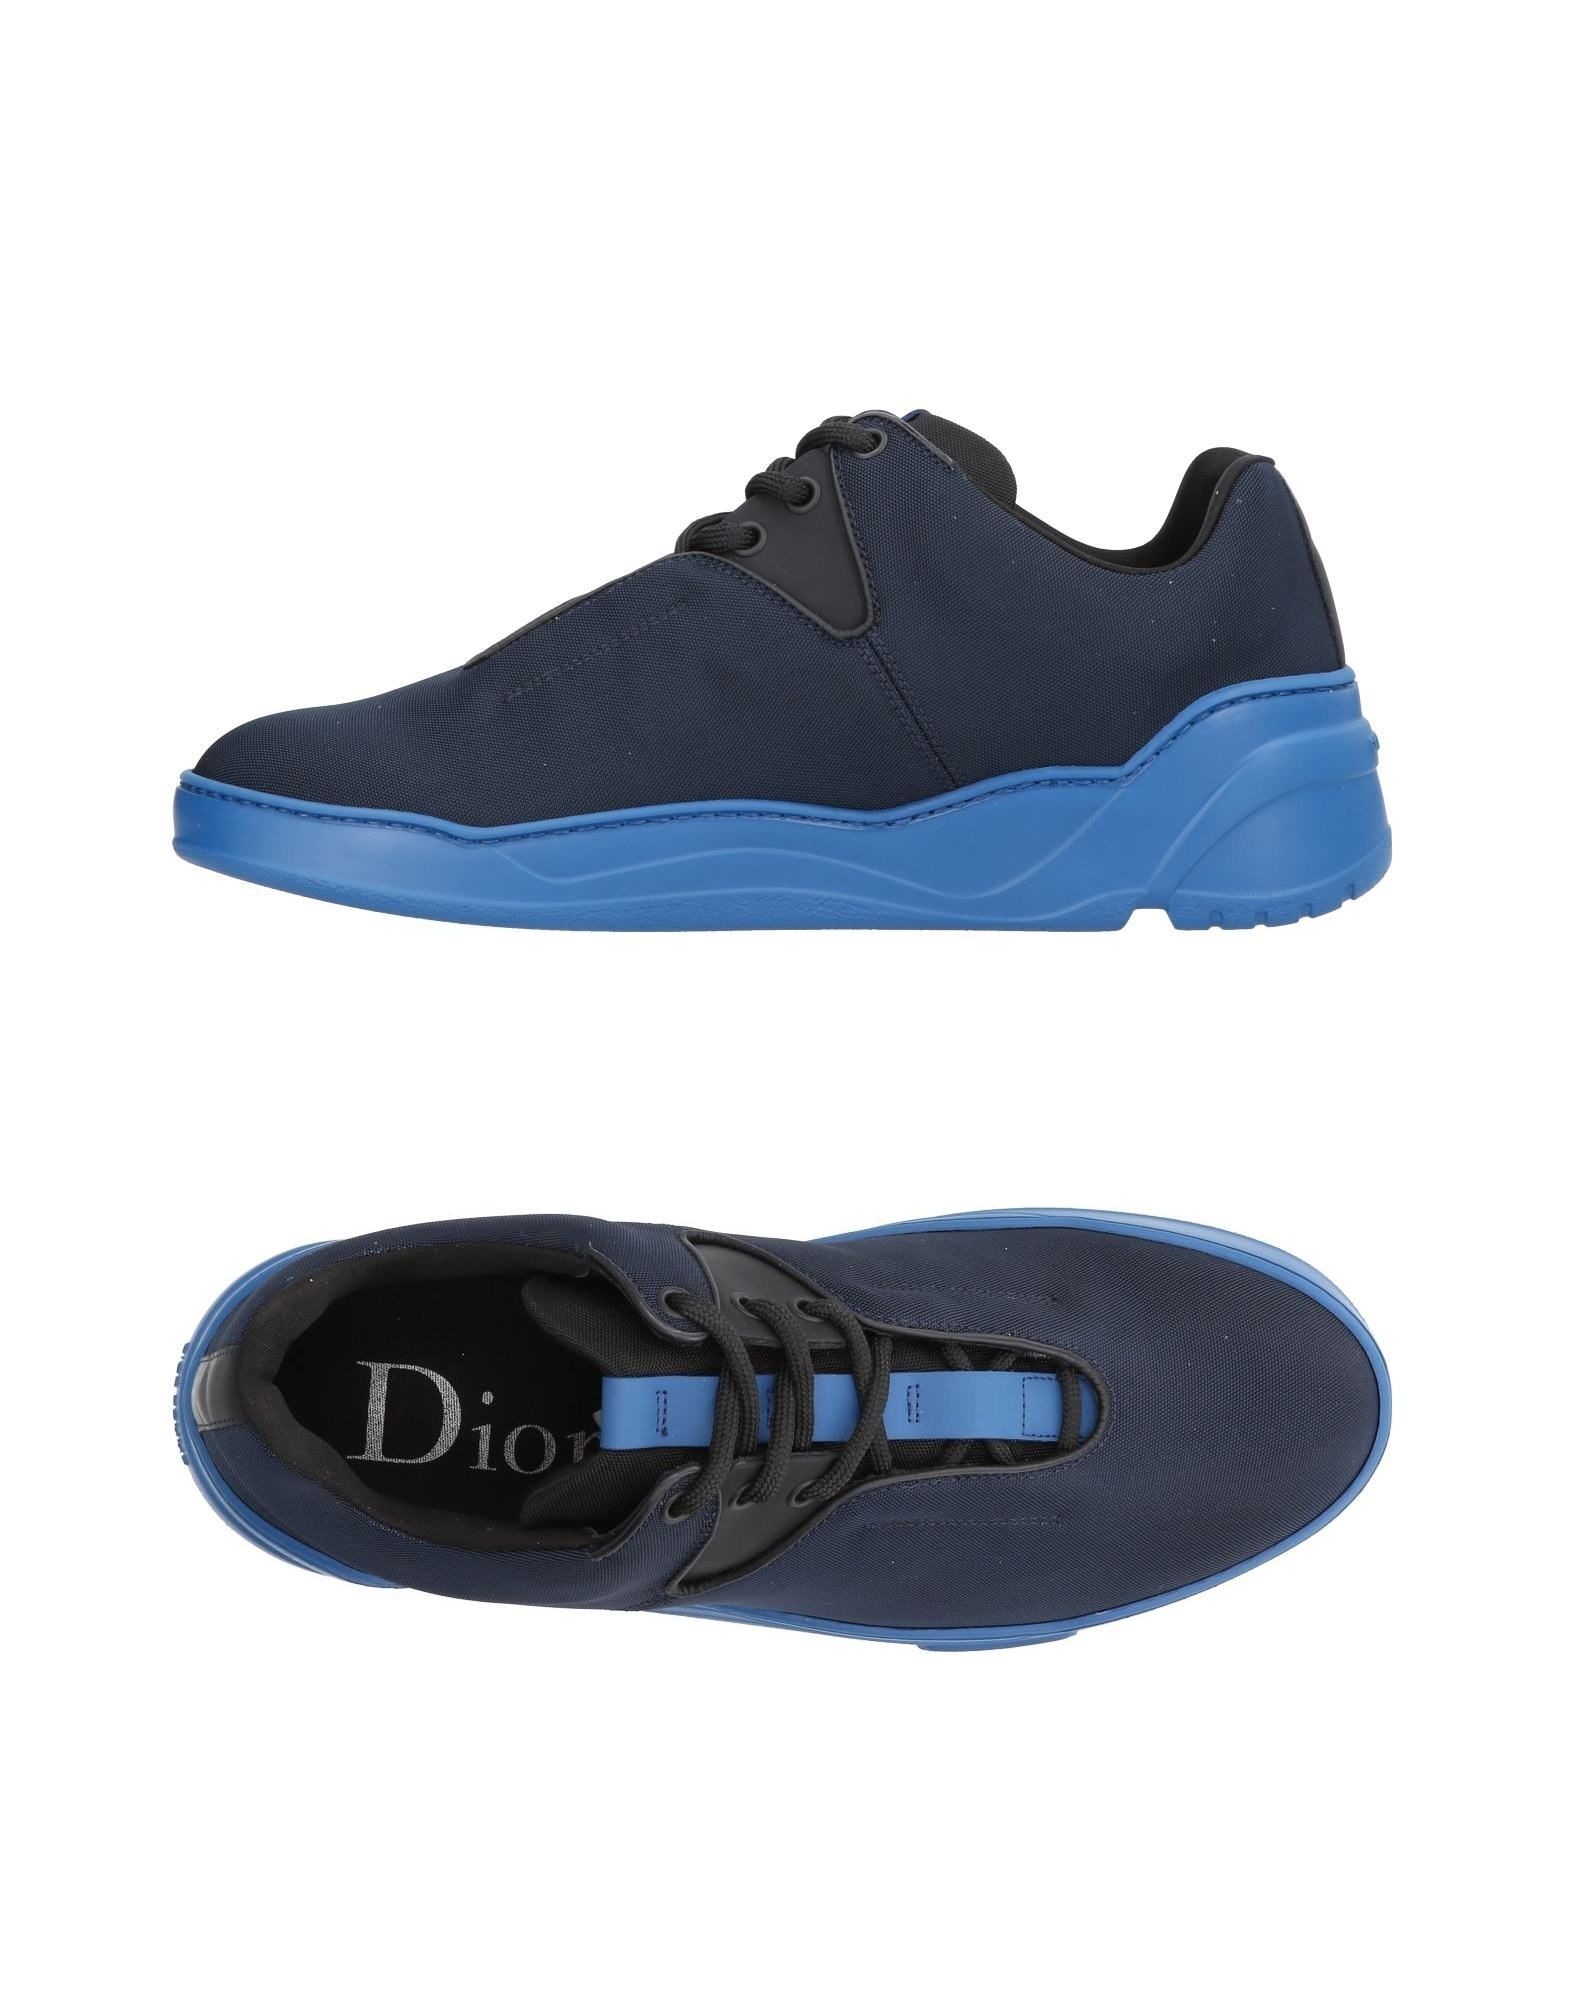 Sneakers Dior Femme Homme Sur Dfqcd5 aOrFaqU